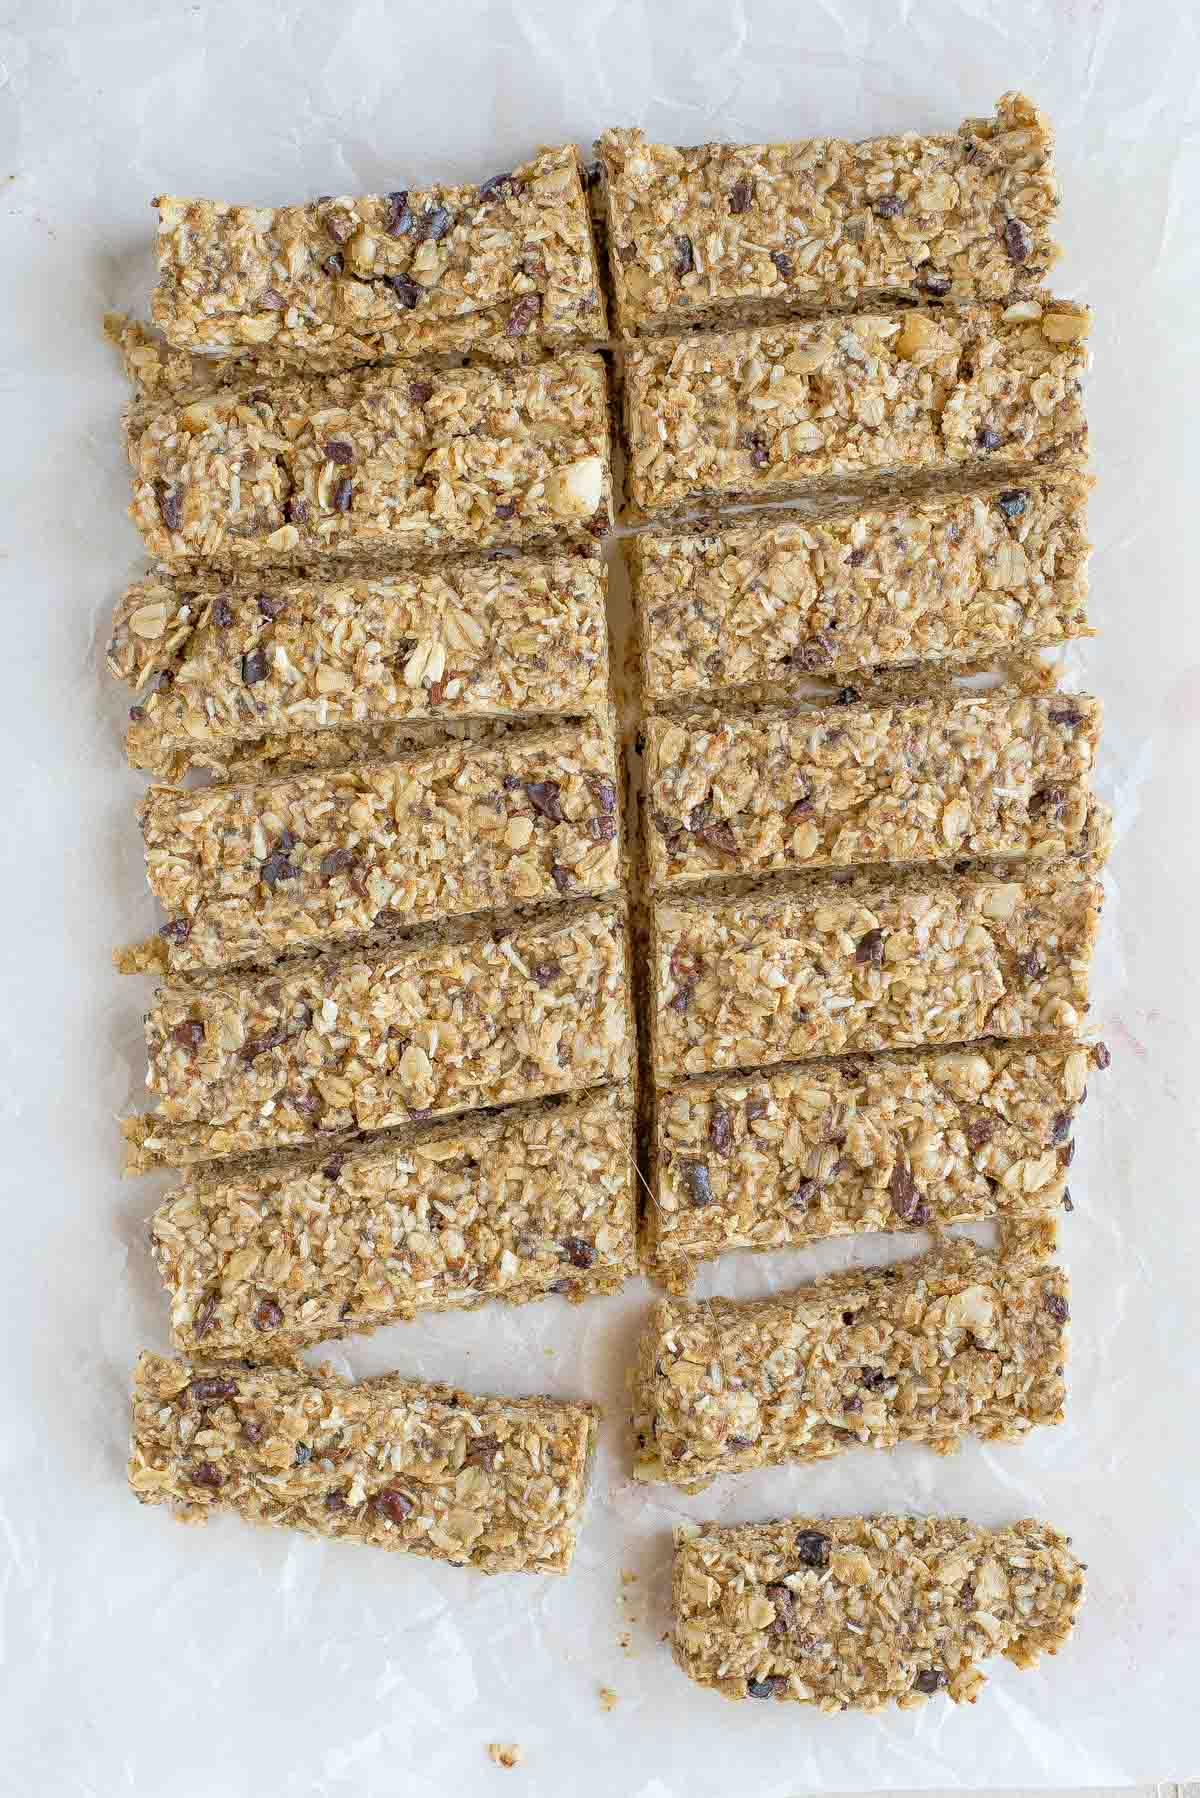 Are you looking for the perfect homemade snack? Check out this 10 minute chewy, no-bake, gluten free granola bar recipe. You'll be glad you did.